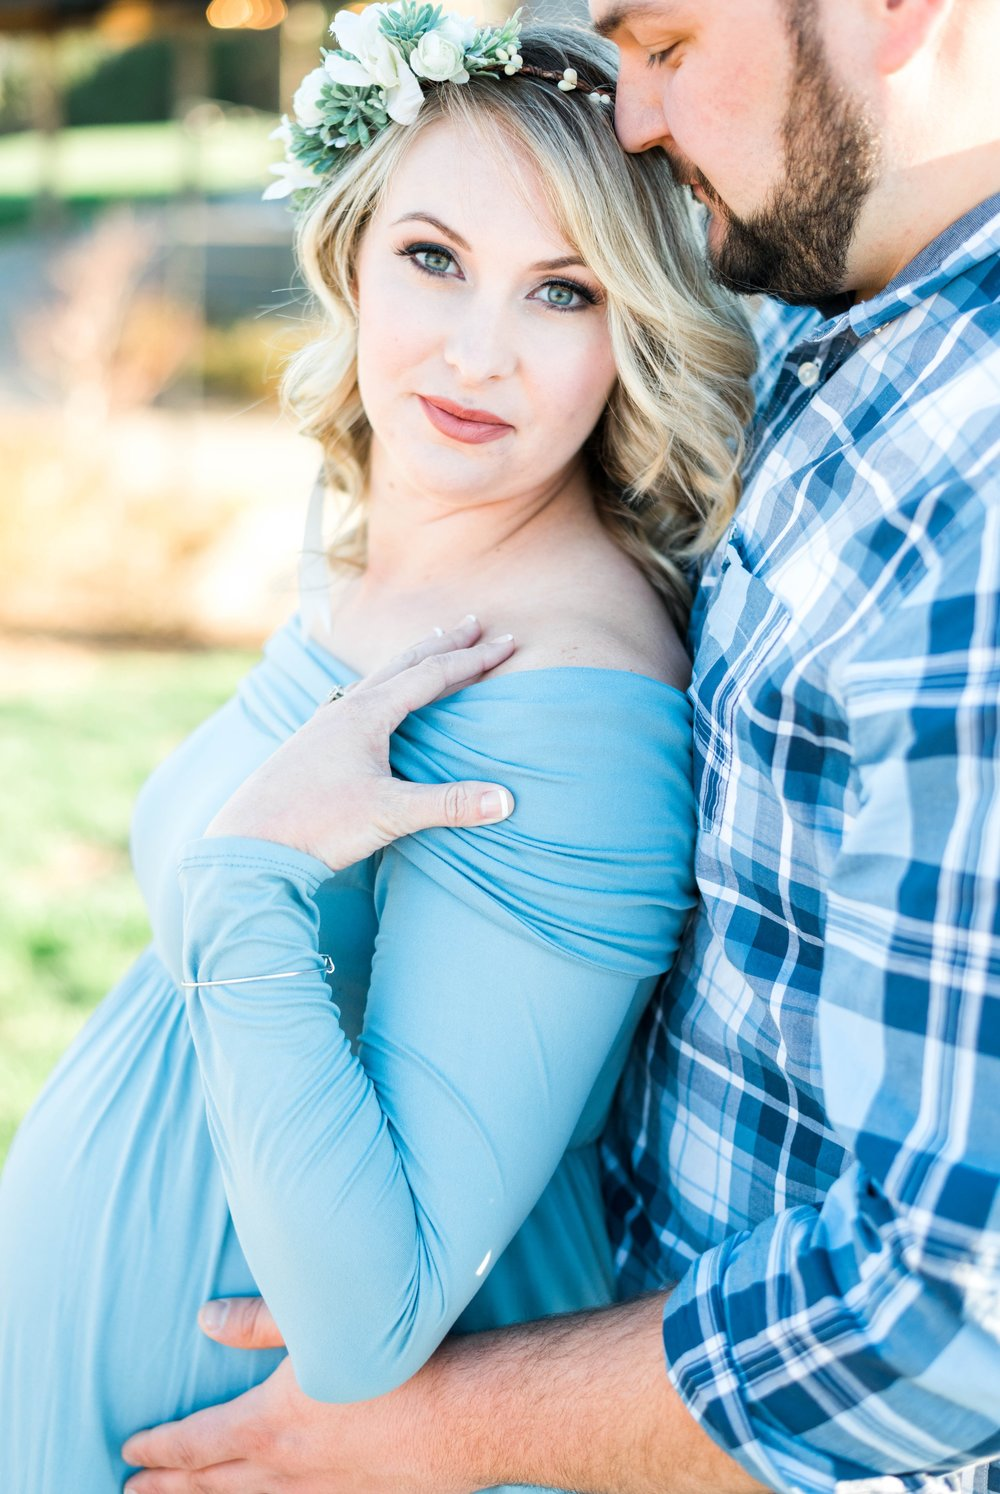 SorellaFarms_Jessica+Dylan_MaternitySession_Virginiaweddingphotographer 21.jpg